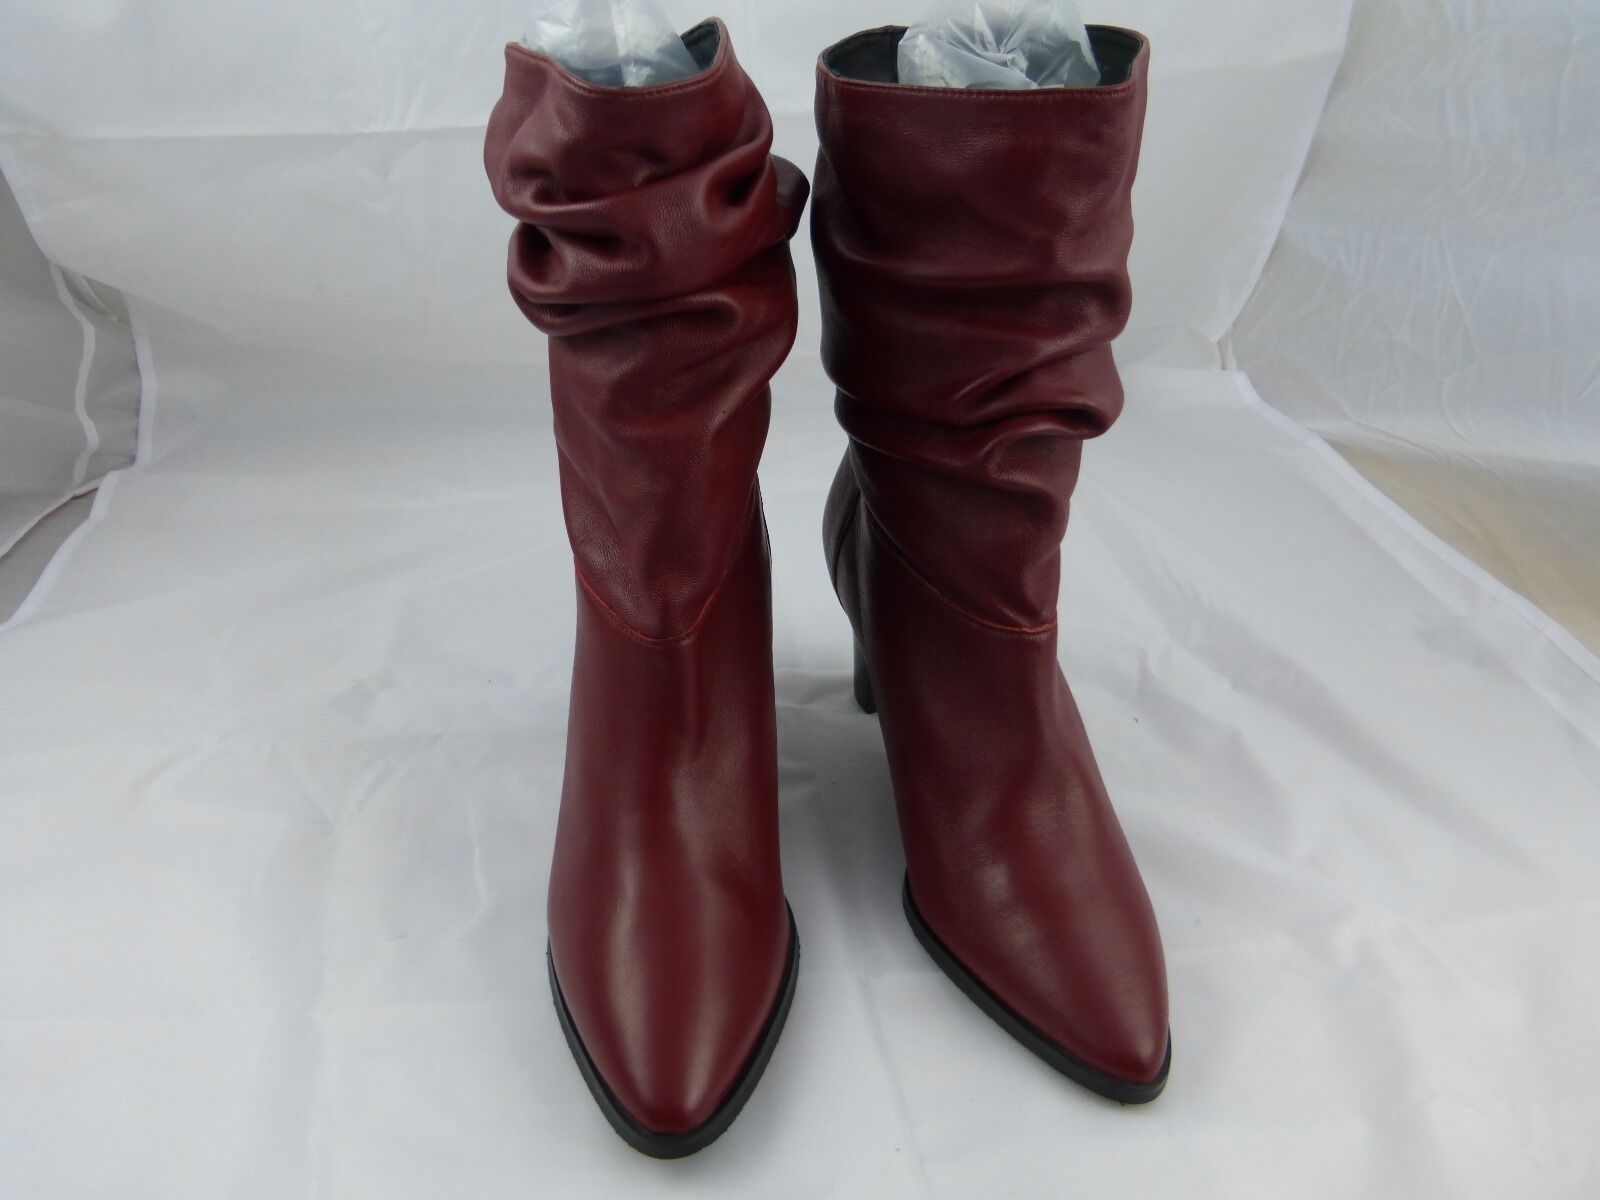 Adrianna papell midcalf bottes, rouge rust  leather New, Taille 7